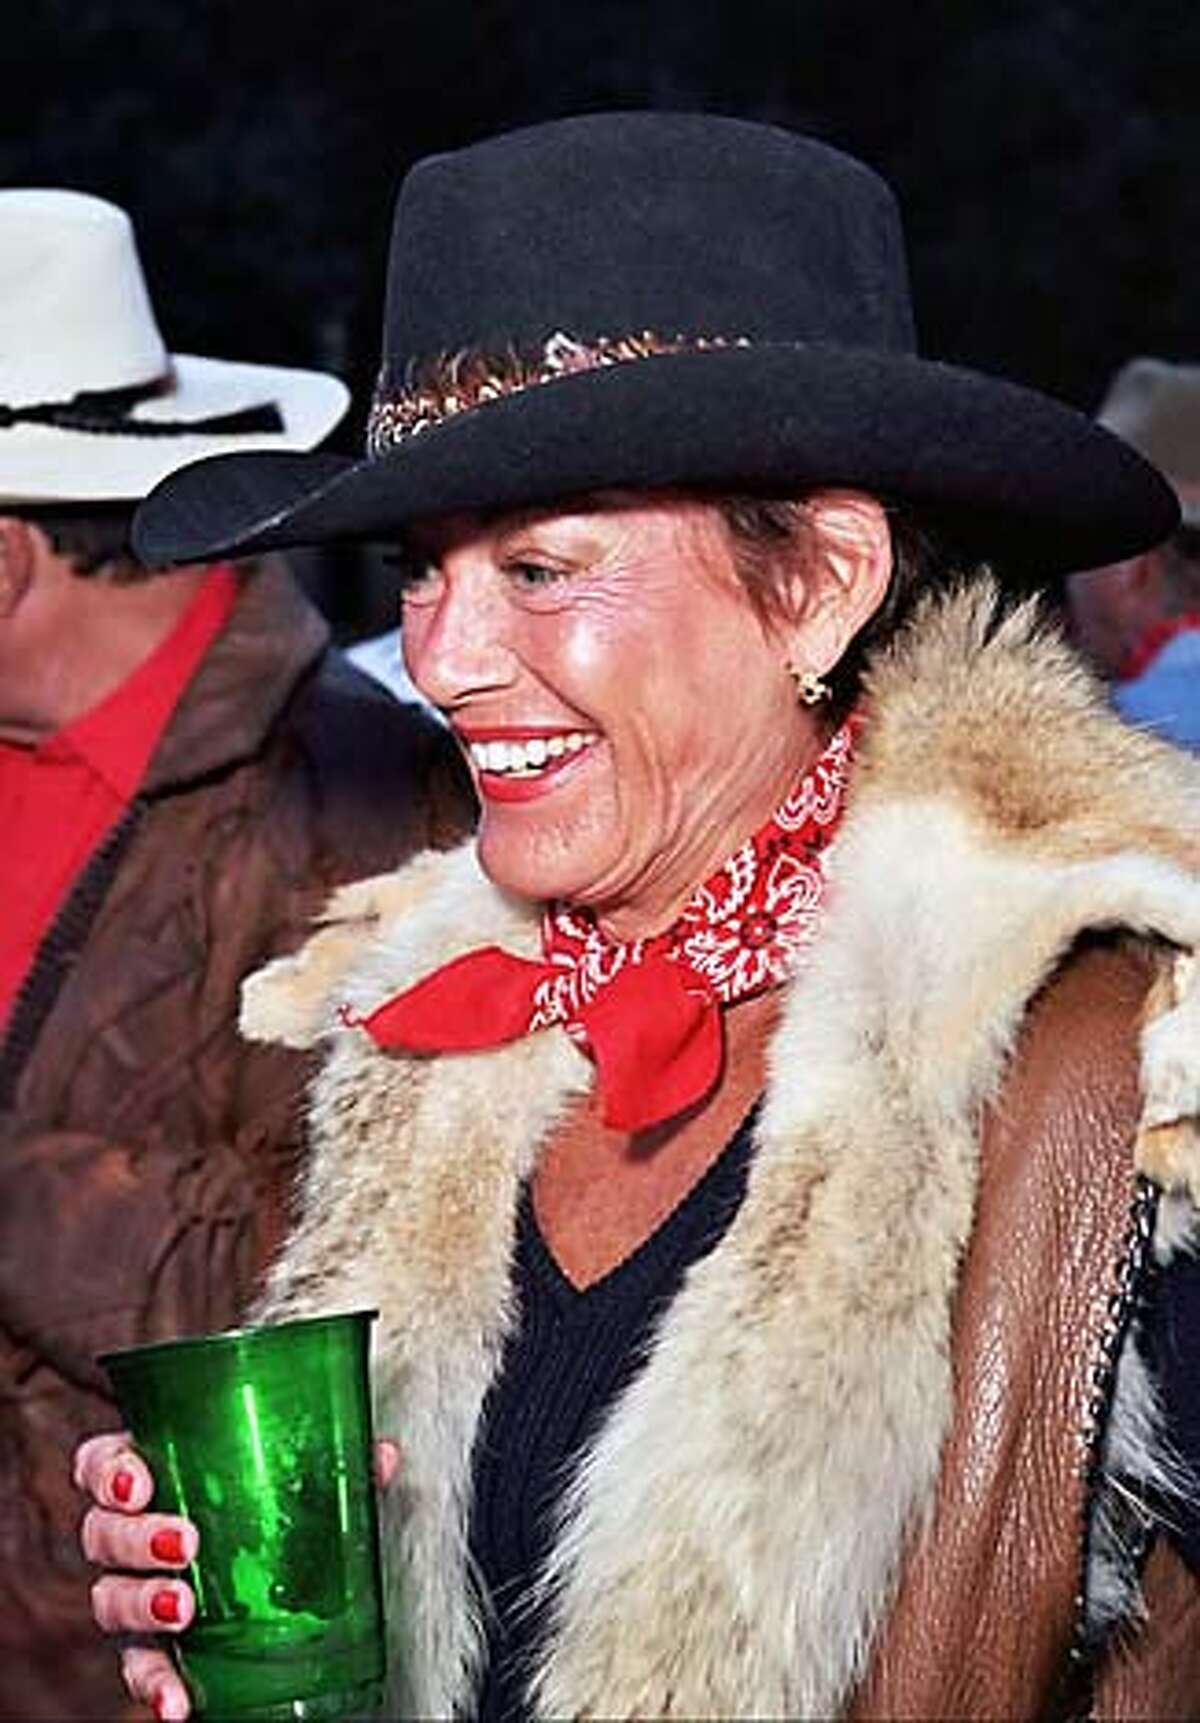 Anne Walther at the Shansby Cowboy party.